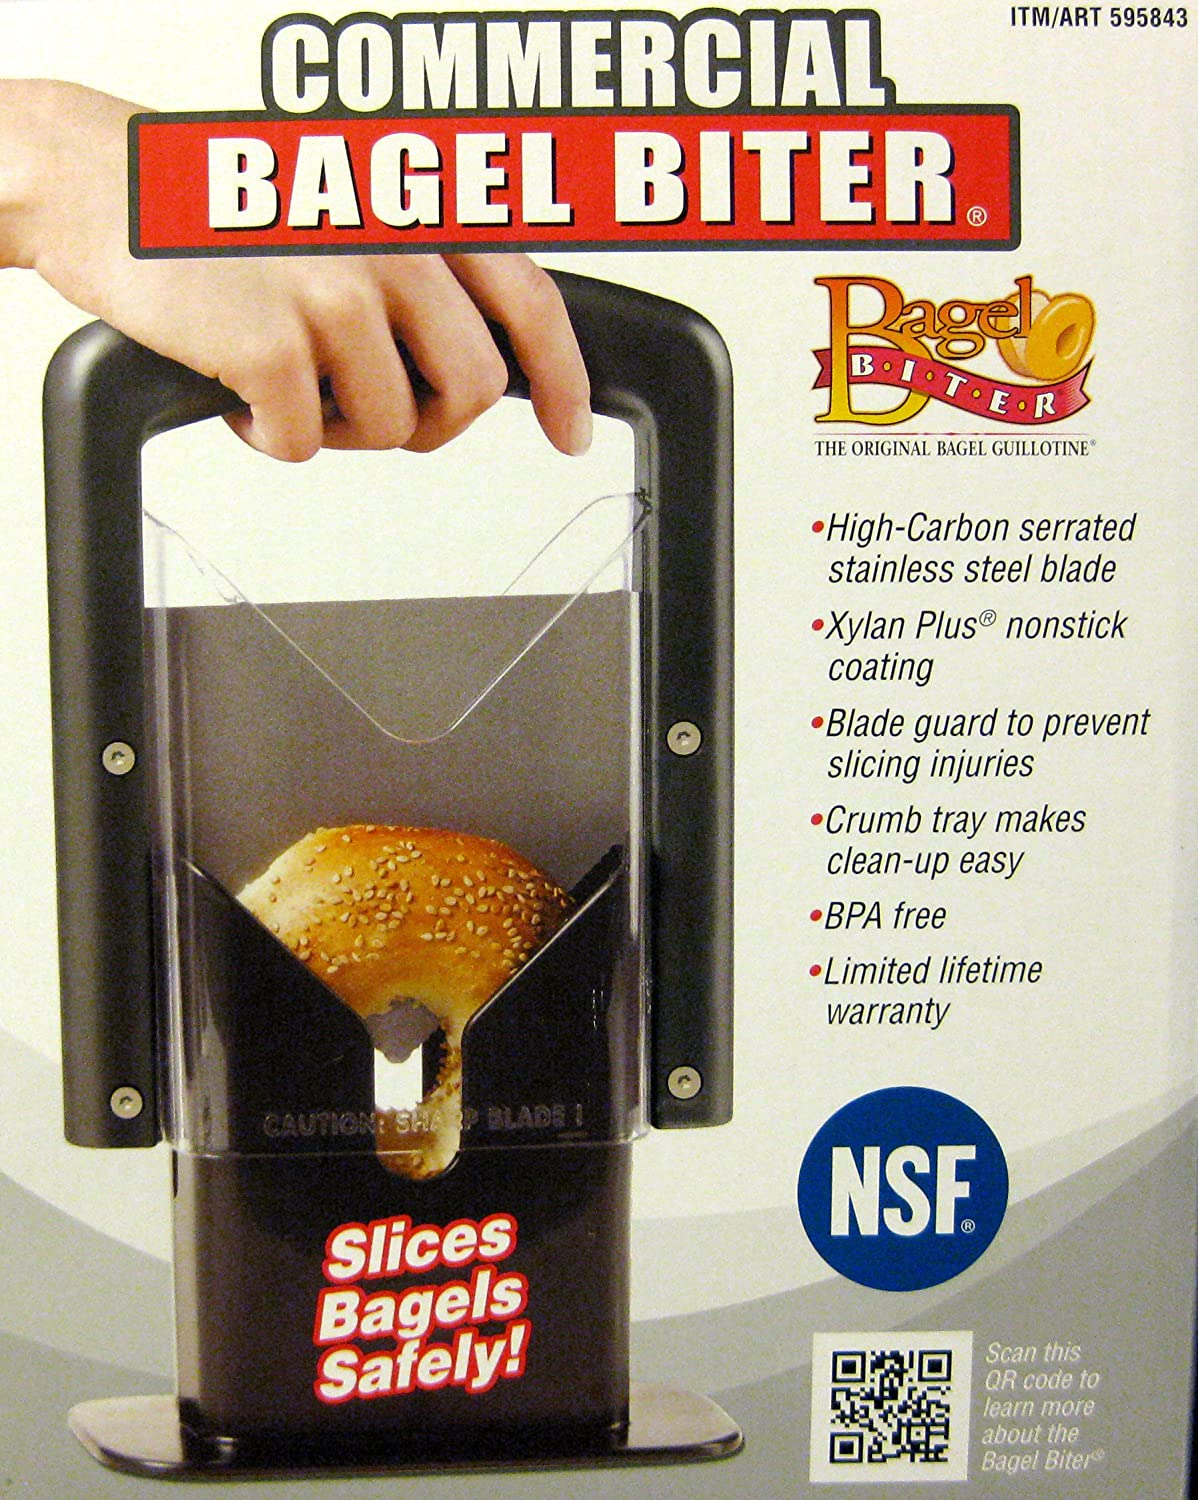 Bagel Biter High-Carbon Serrated Stainless Steel Blade